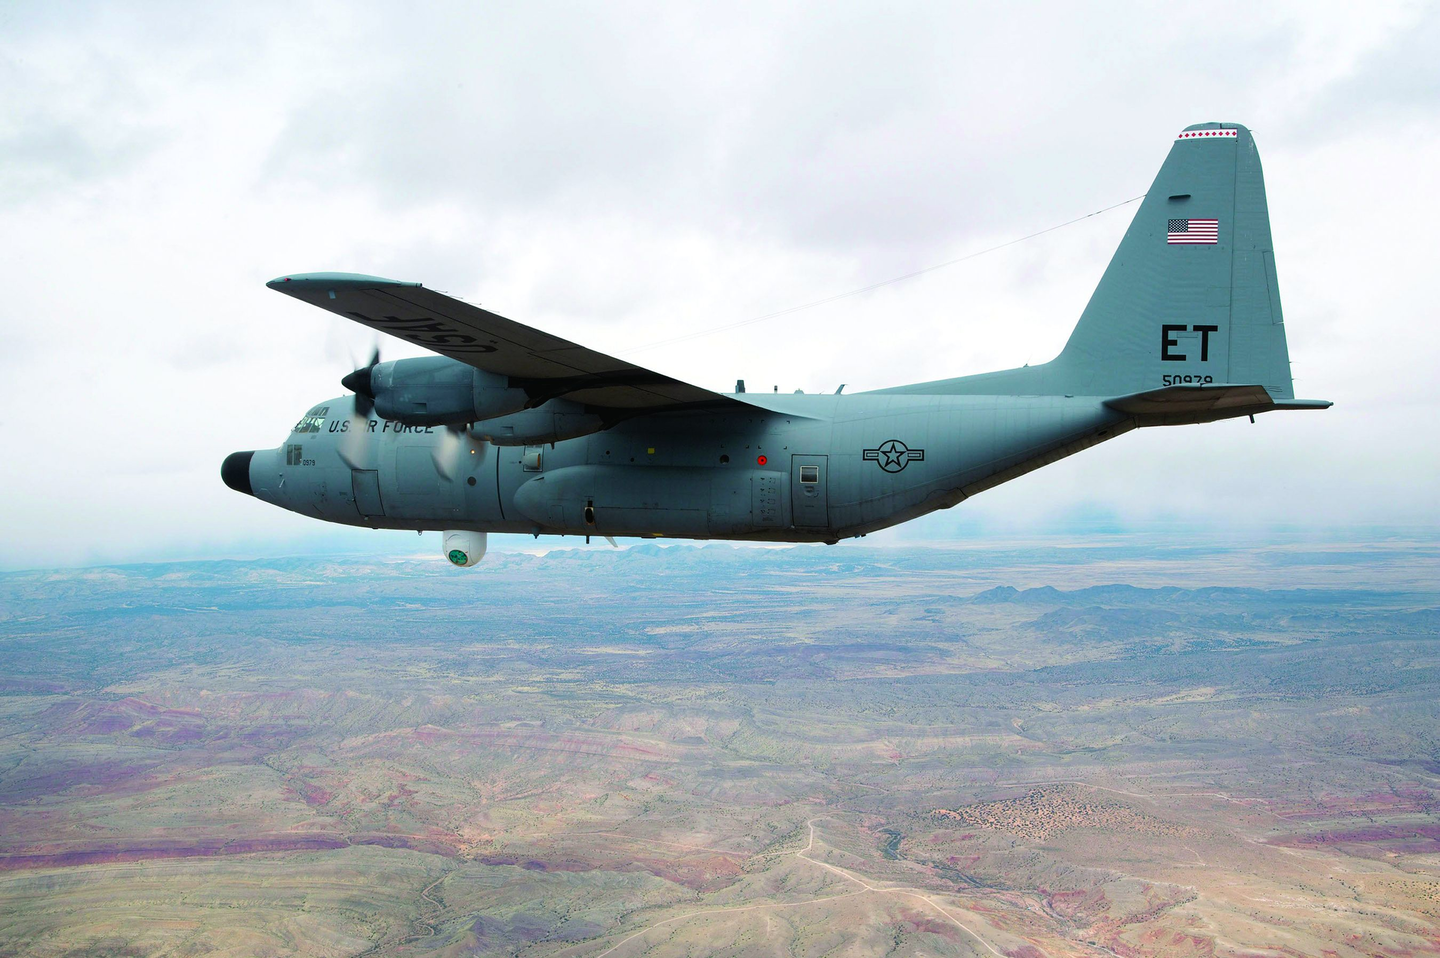 A specially modified NC-130H aircraft equipped with the Advanced Tactical Laser weapon system fired its laser while flying over White Sands Missile Range, N.M., successfully hitting a target board located on the ground.